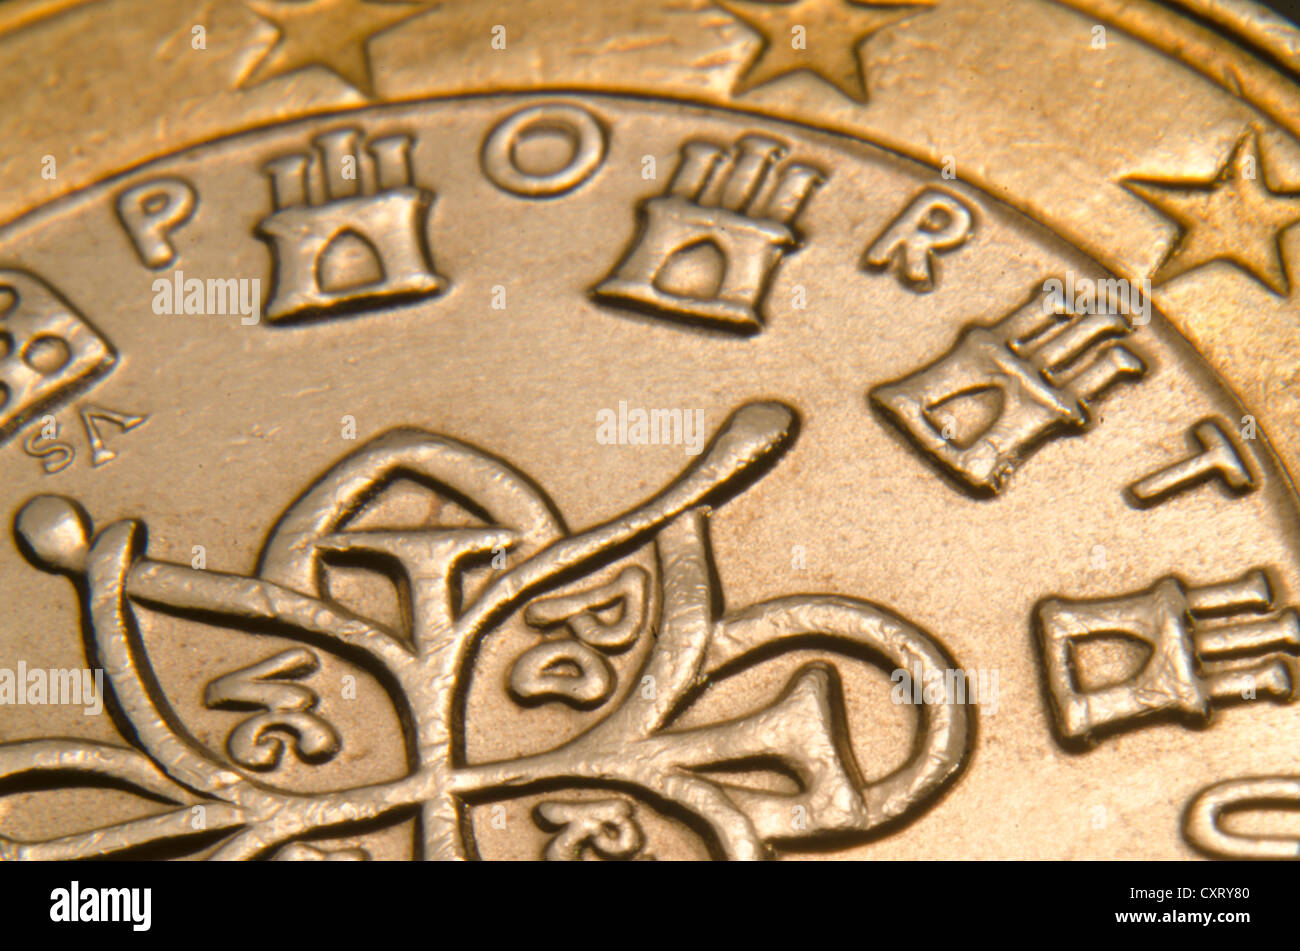 Portuguese euro coin, extreme close-up - Stock Image